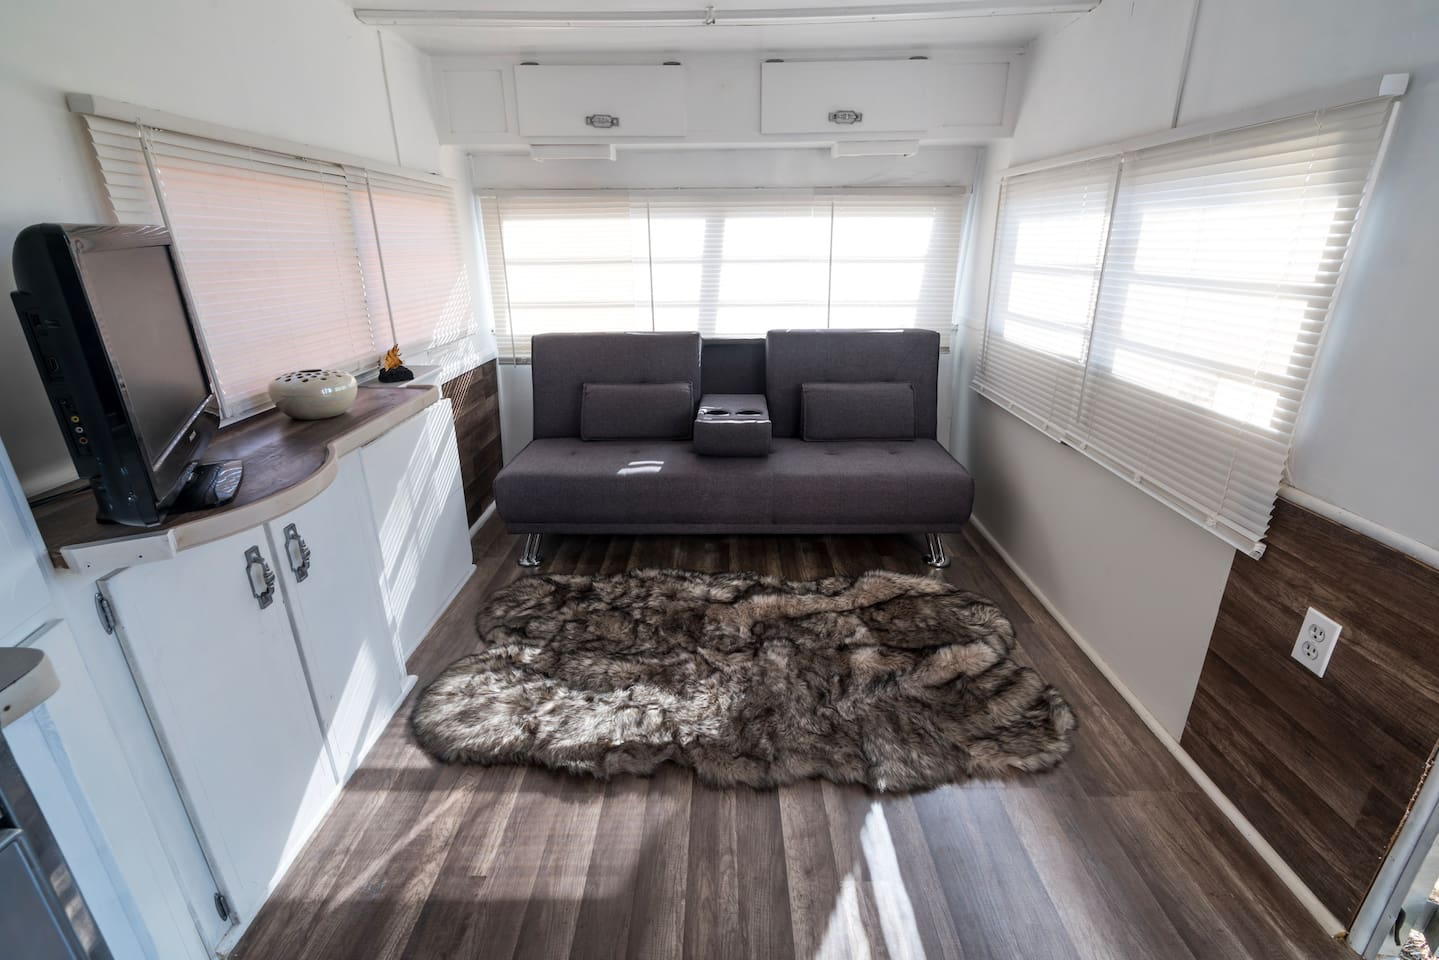 Your own little RV/ apartment style